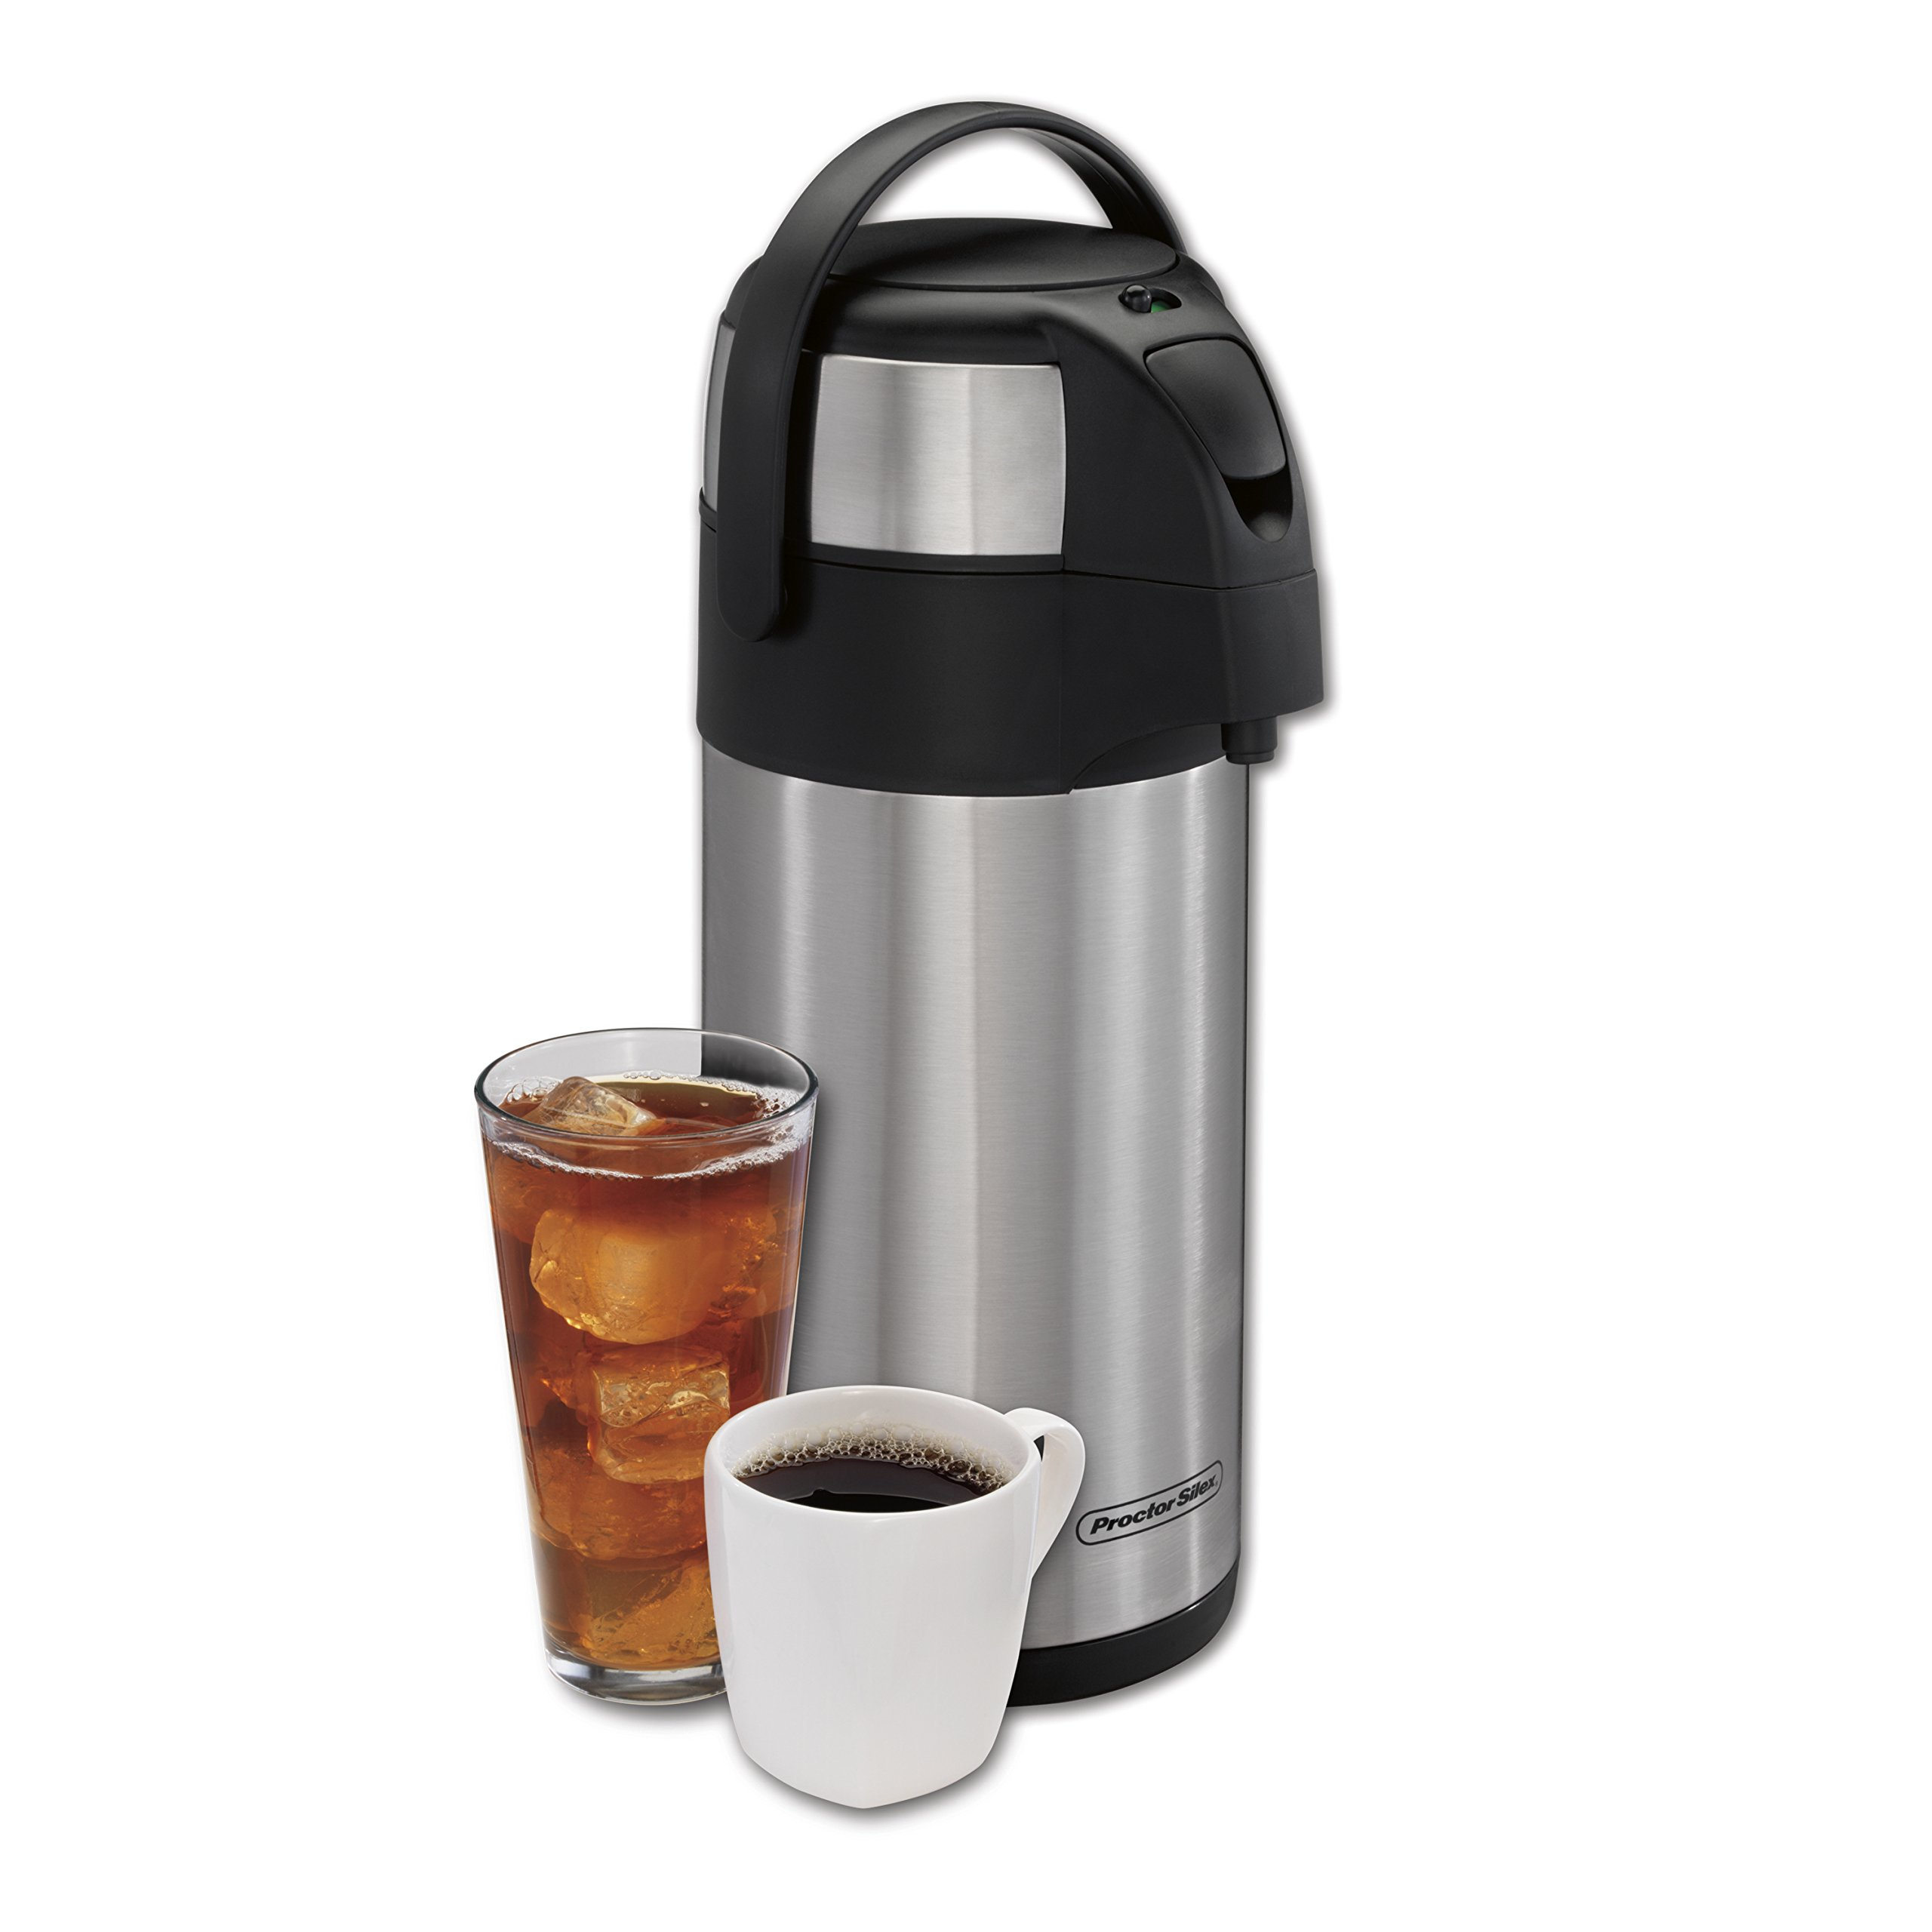 Proctor Silex 40411 Thermal Airpot Hot Coffee Cold Beverage Dispenser with Pump, Vacuum Insulated, Compact and Portable, 3 Liter, Stainless Steel